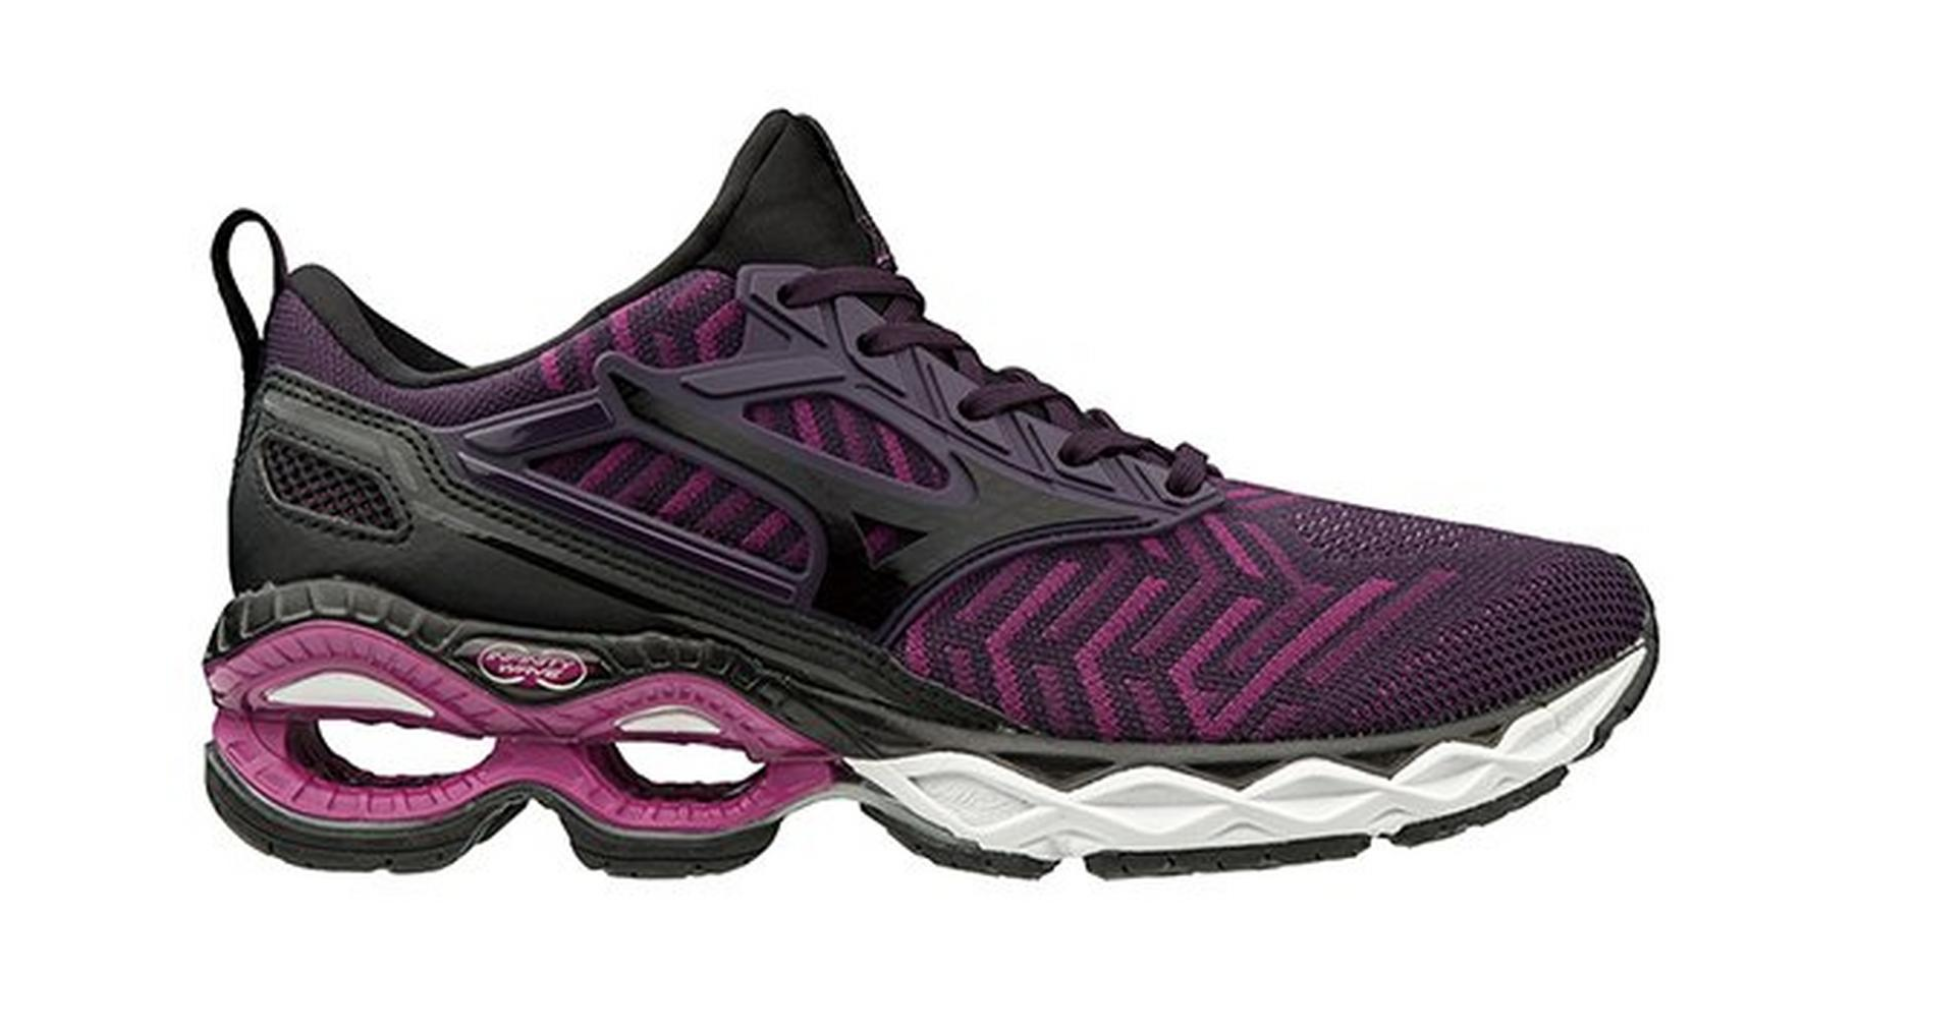 zapatillas mizuno wave rider 22 usa 40